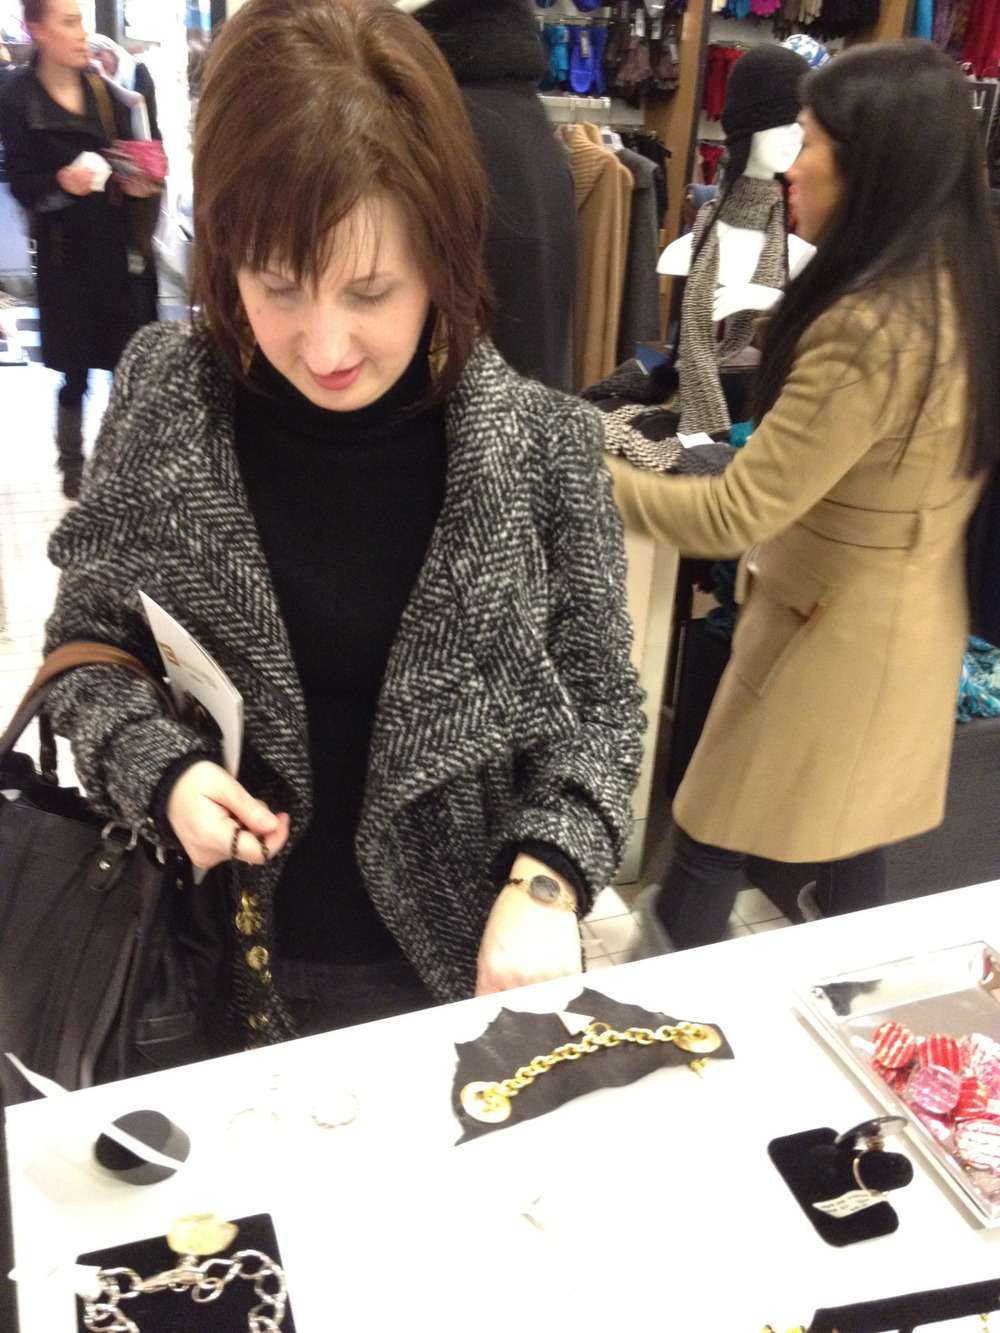 Recent+Event+Barbara+Campbell+Jewelry+Trunk+Show+in+NYC++img_1376_2.jpg